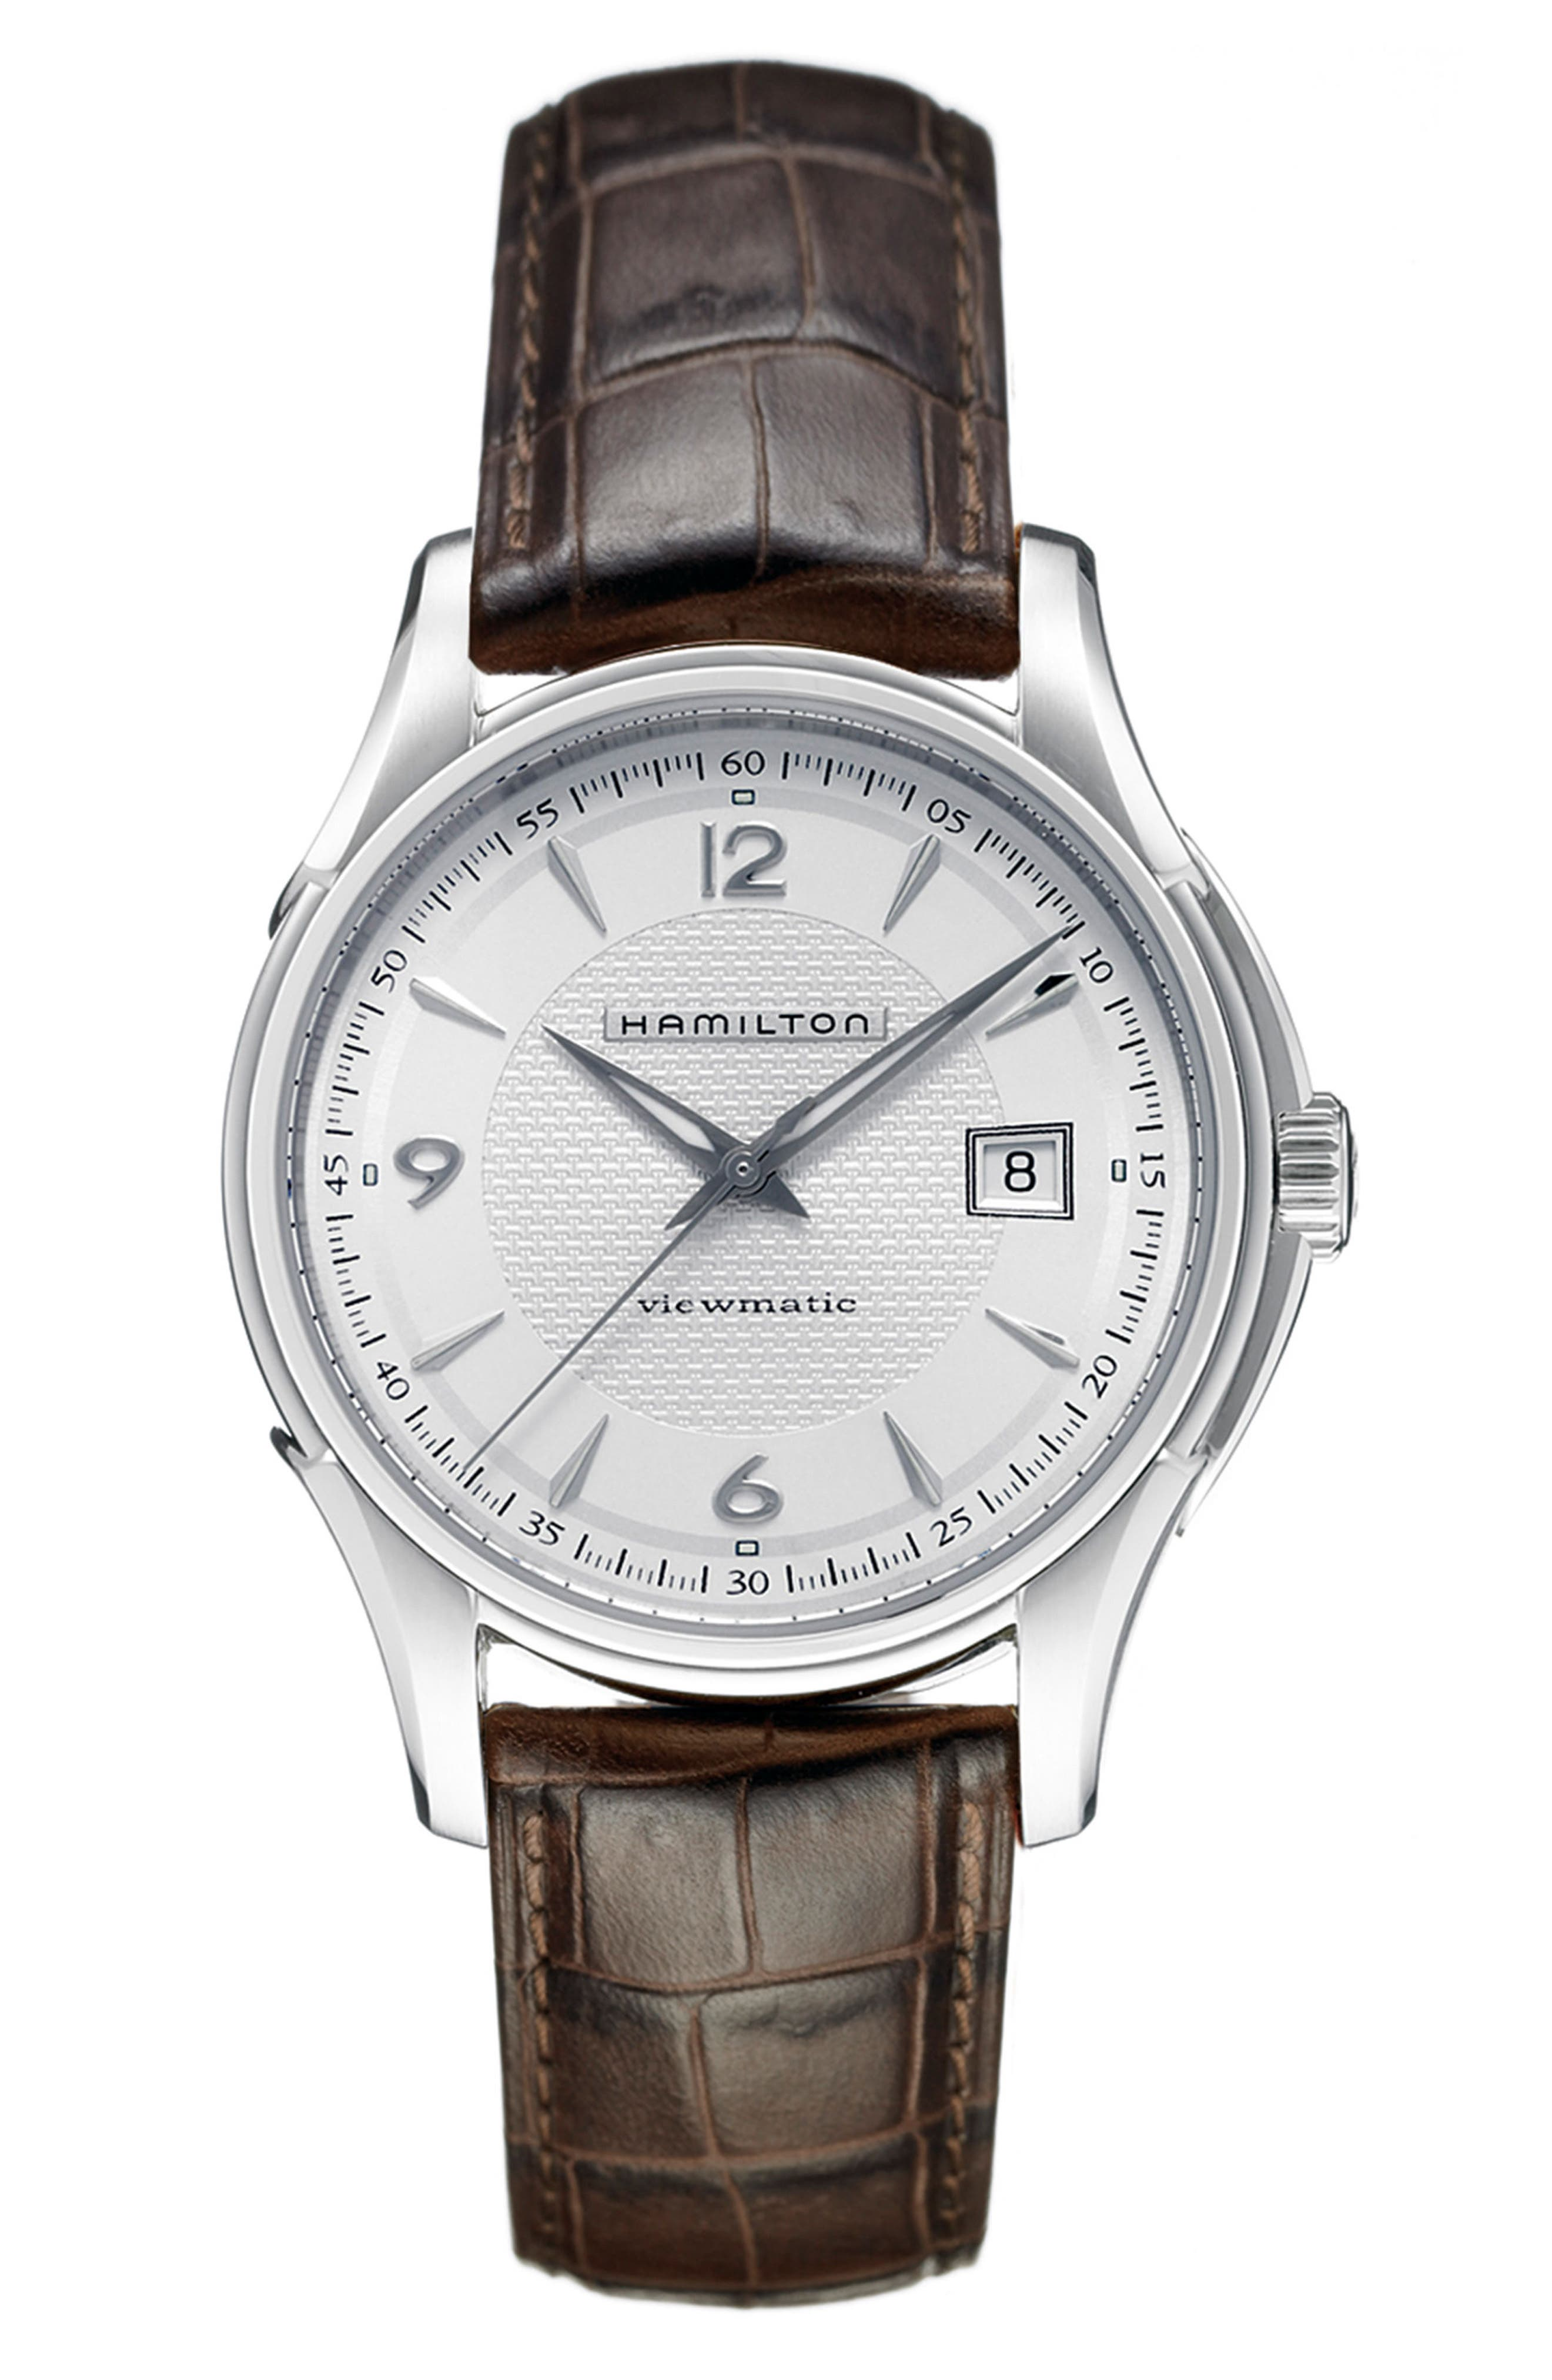 HAMILTON Jazzmaster Viewmatic Auto Leather Strap Watch, 40mm